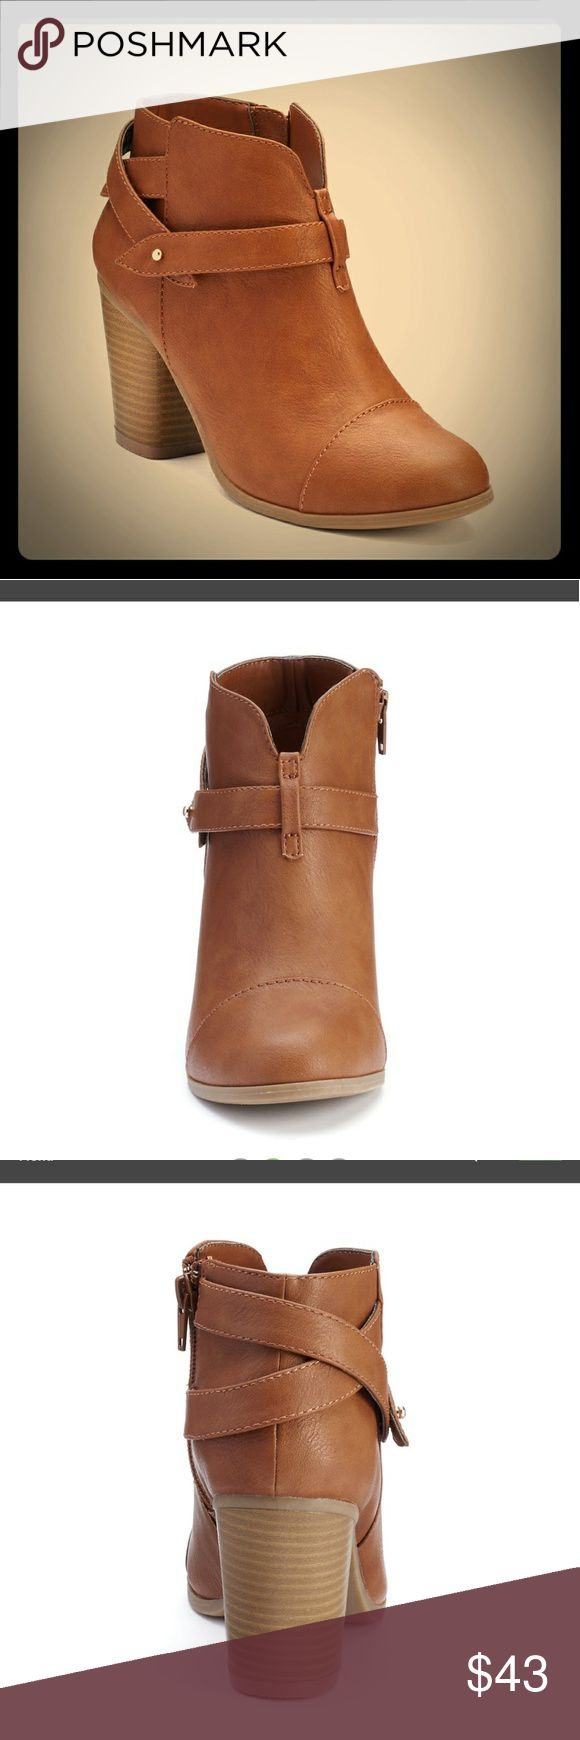 😍Slit Ankle Booties😍 😚NWT Slit ankle booties by LC Lauren Conrad in cognac. 3 inch stacked heel. Size 7😚 LC Lauren Conrad Shoes Heeled Boots